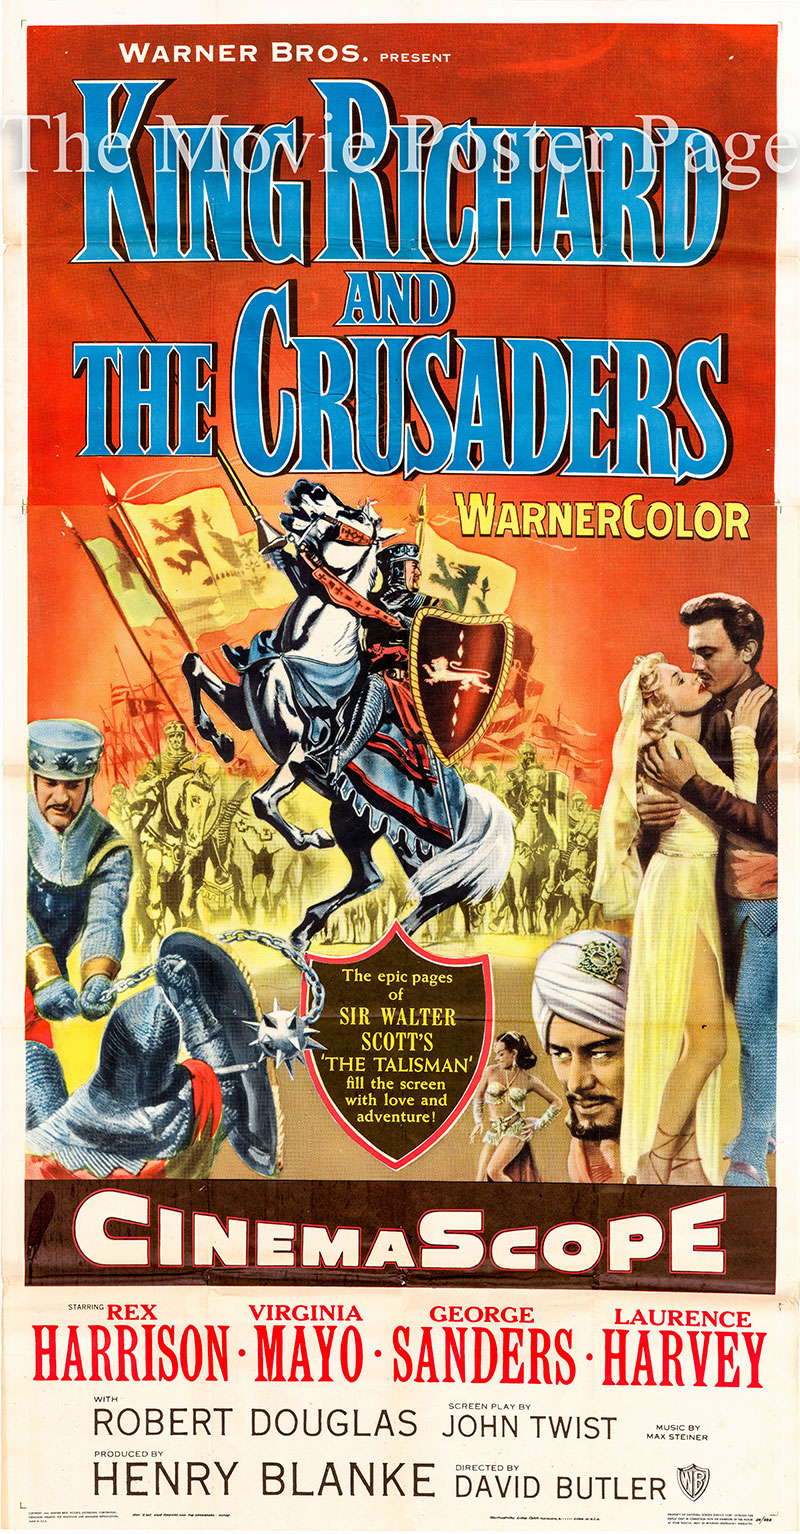 Pictured us the US three-sheet promotional poster for the 1954 david Butler film King Richard and the Crusaders starring Rex Harrison and Virginia Mayo.